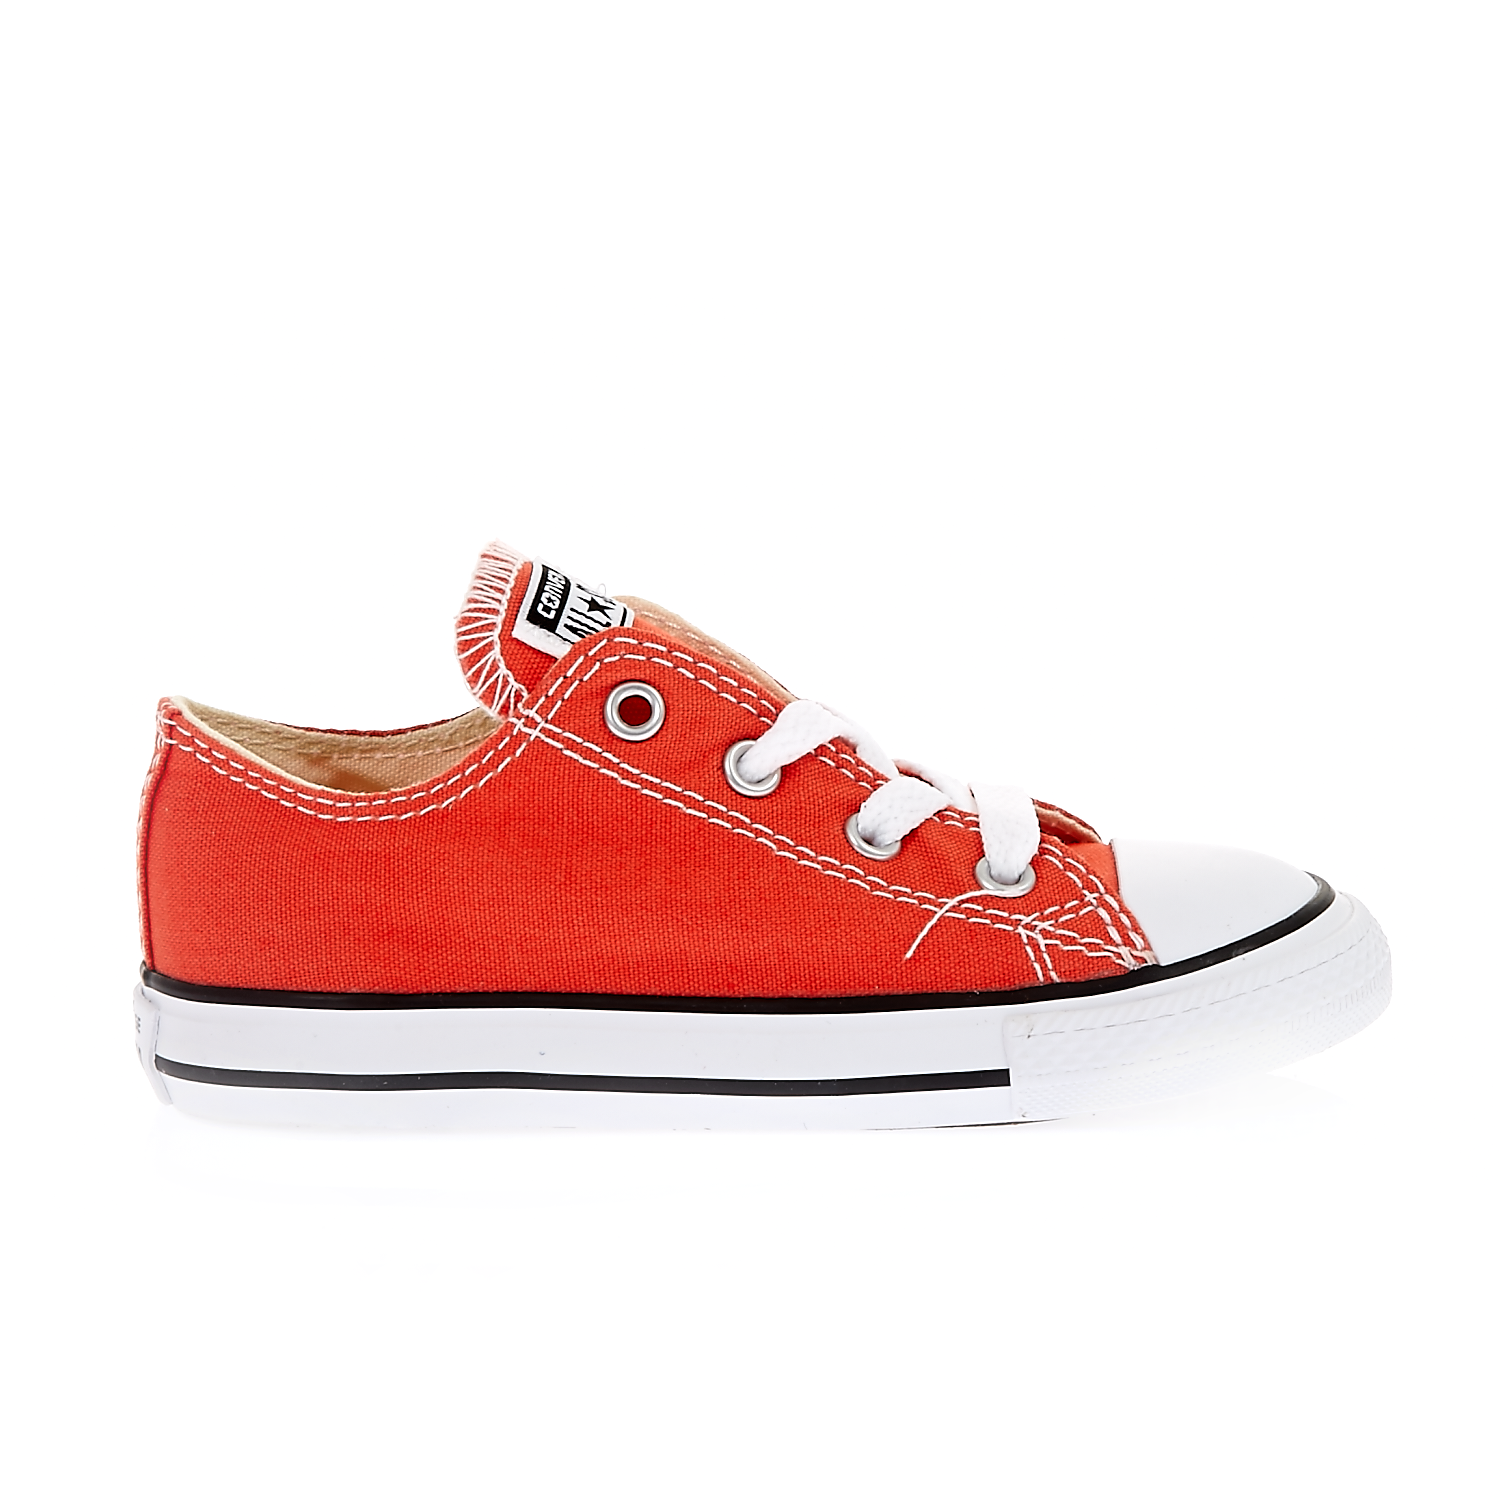 CONVERSE - Βρεφικά παπούτσια Chuck Taylor All Star Ox κόκκινα